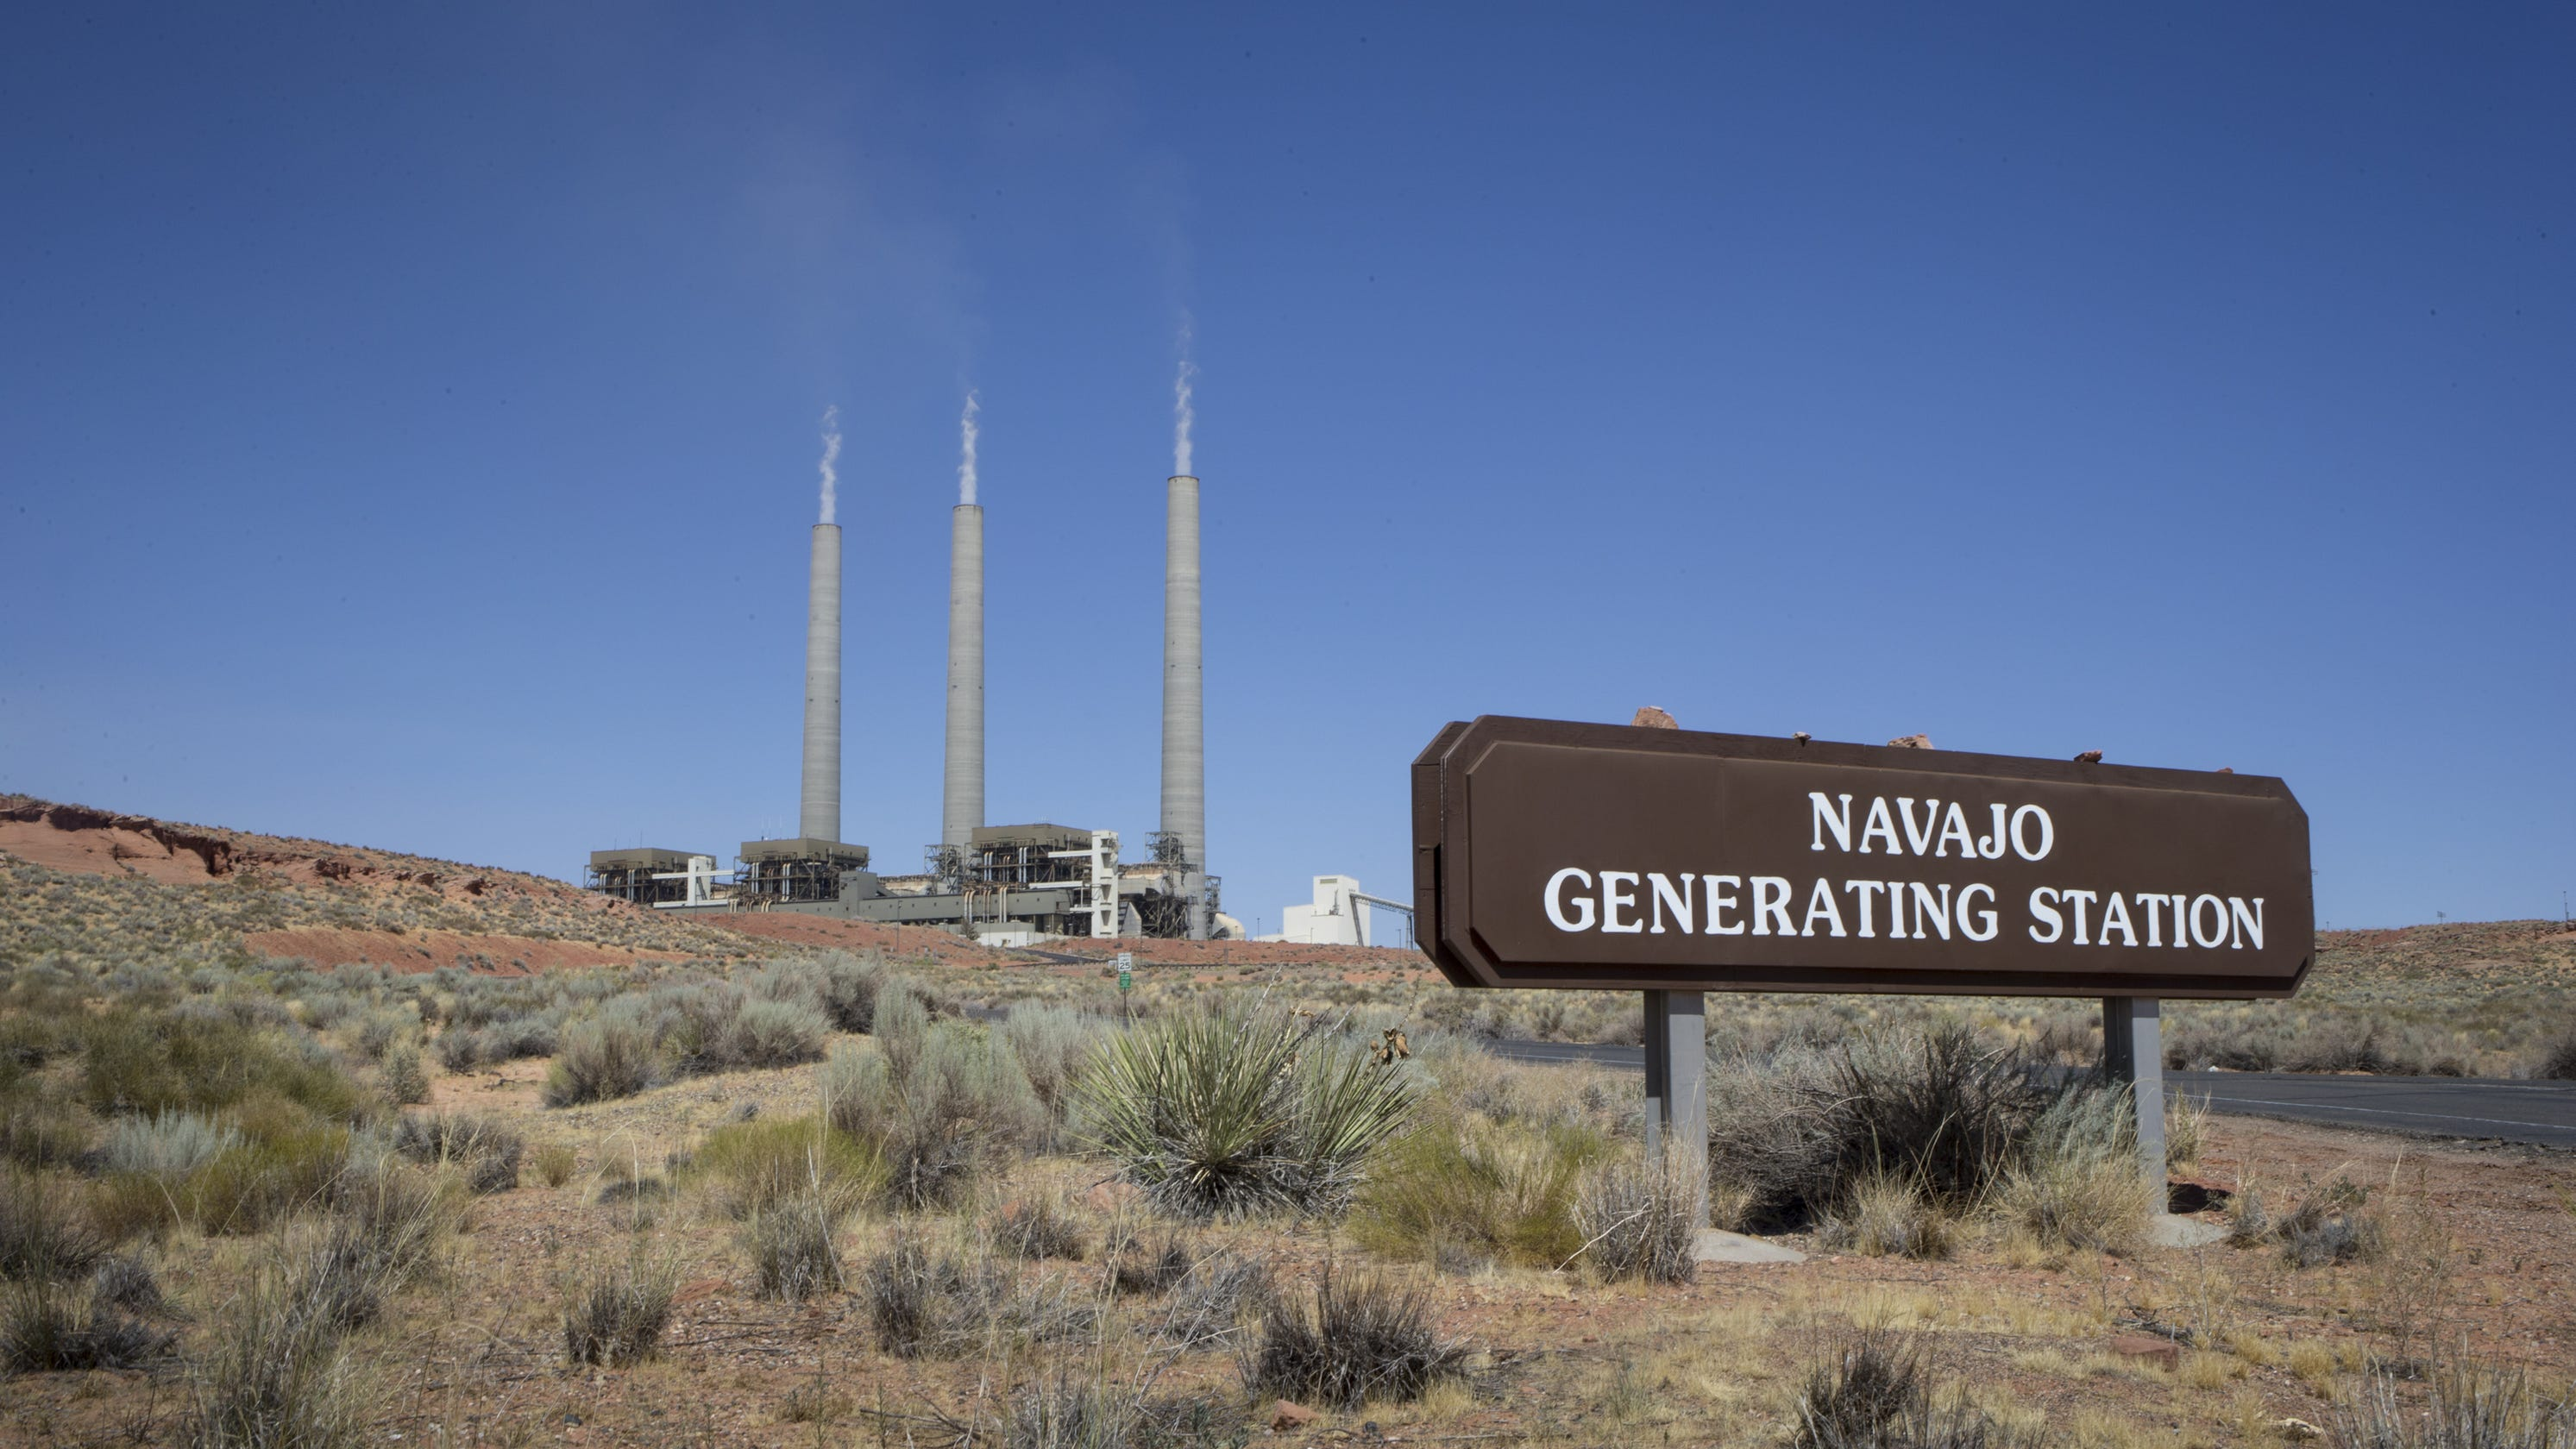 With the Navajo Generating Station gone, we need help luring renewable energy investment to our land